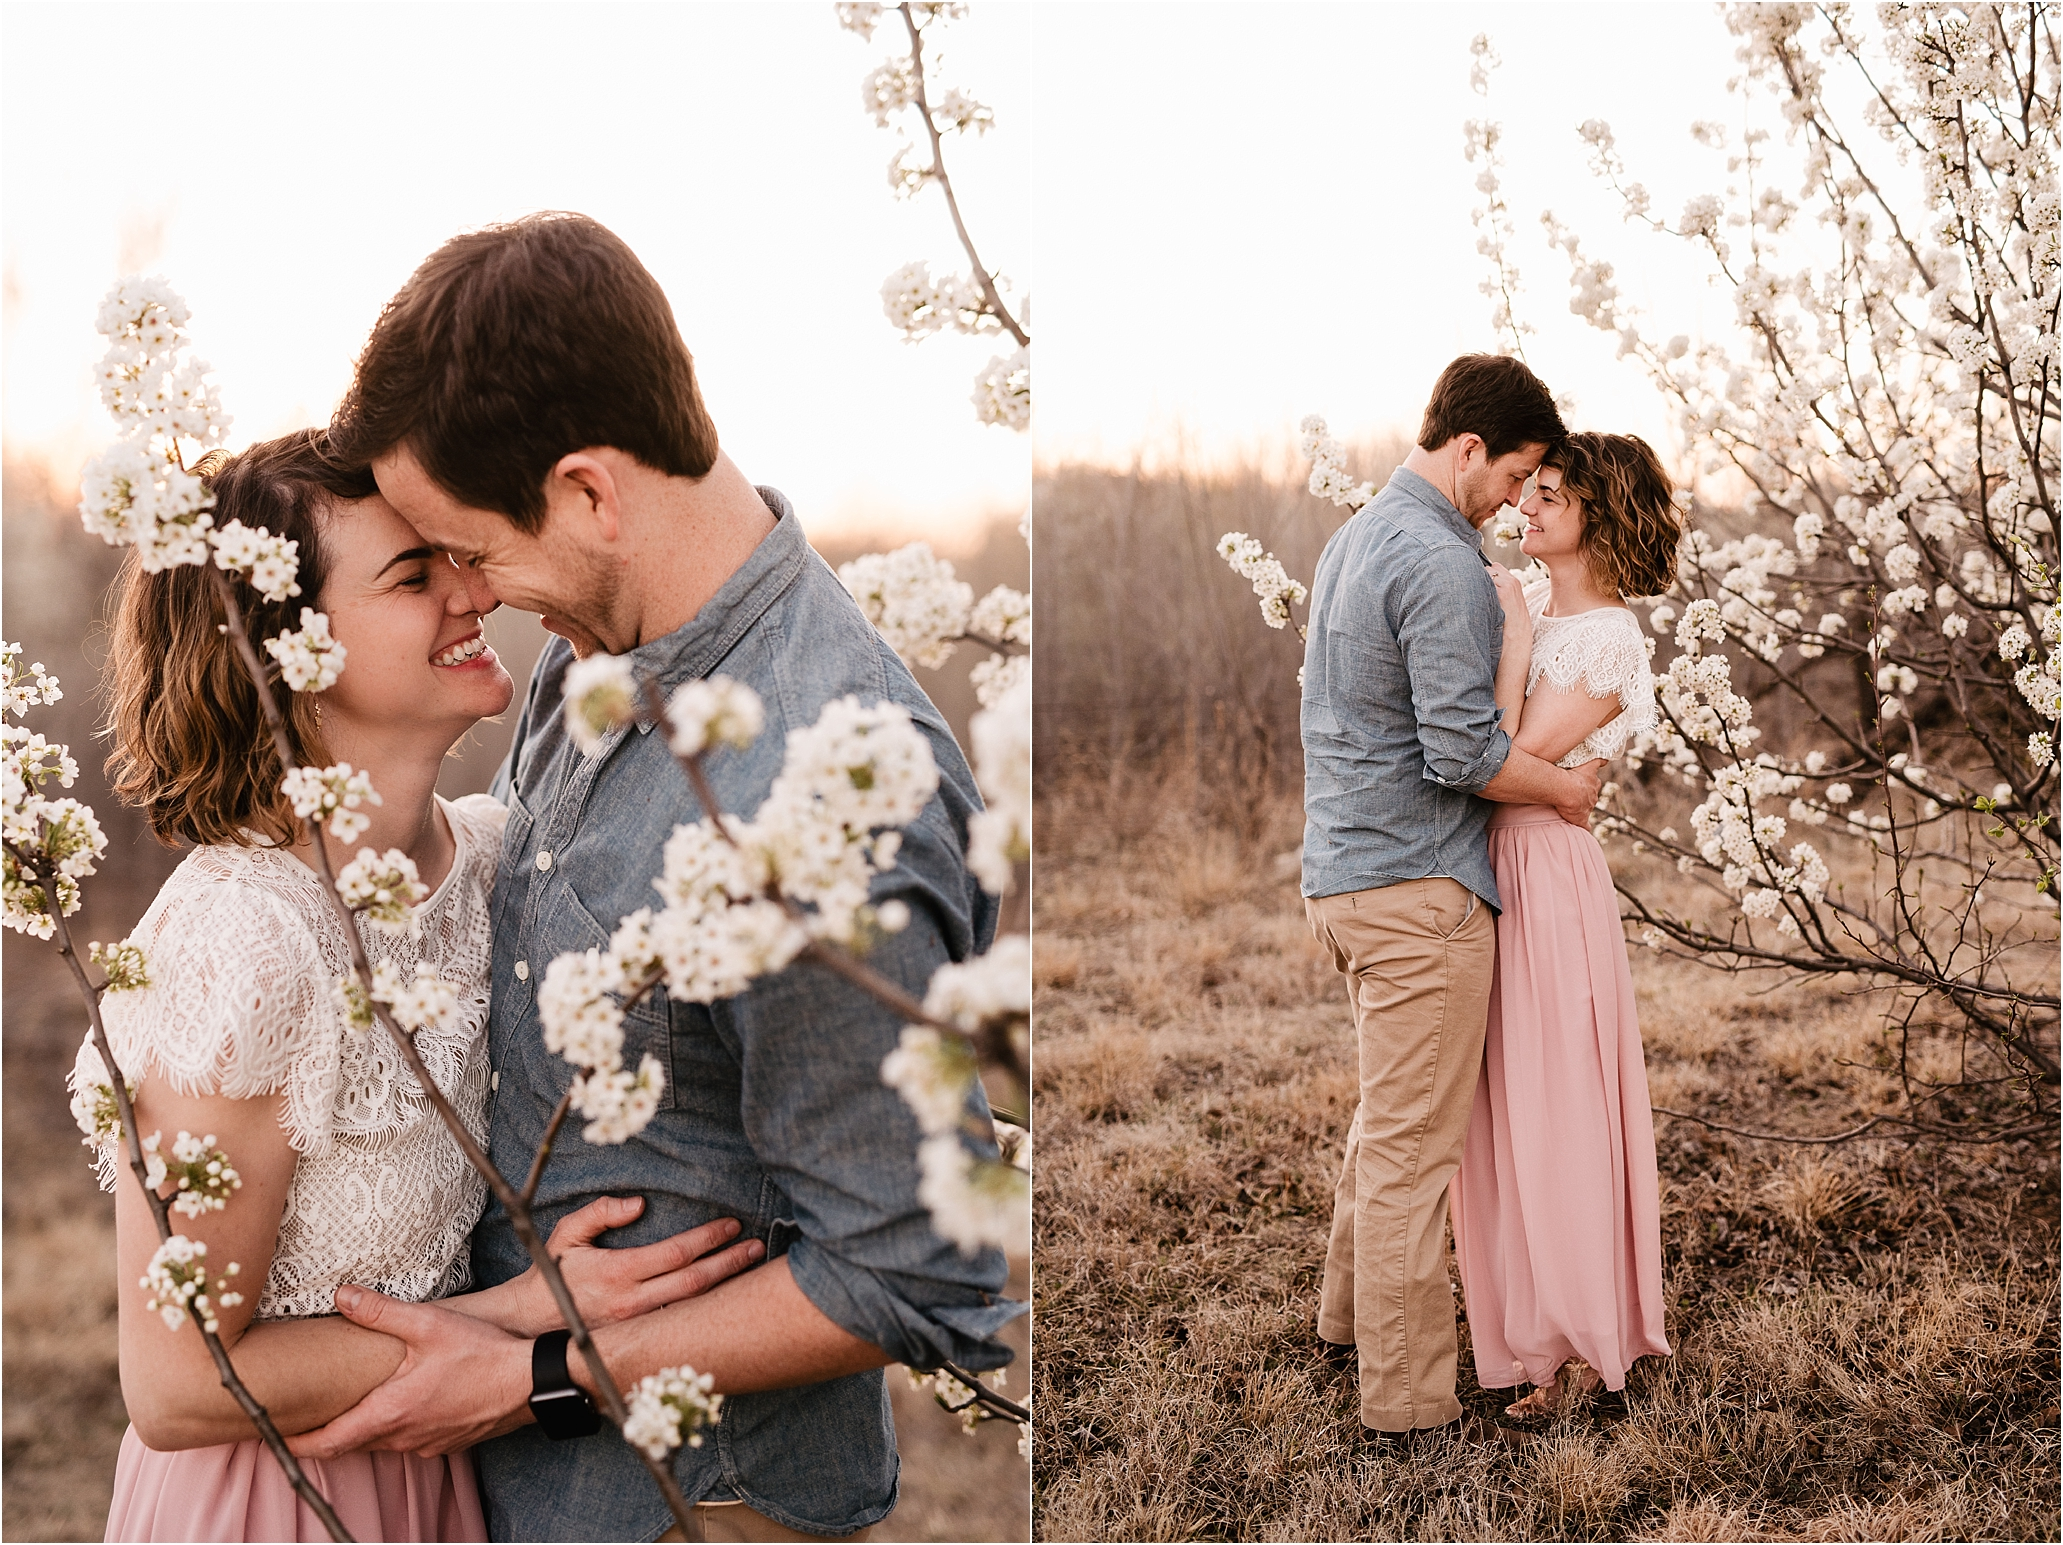 engagement photos session oklahoma wedding photographer outdoors spring edmond okc anniversary what to wear natural